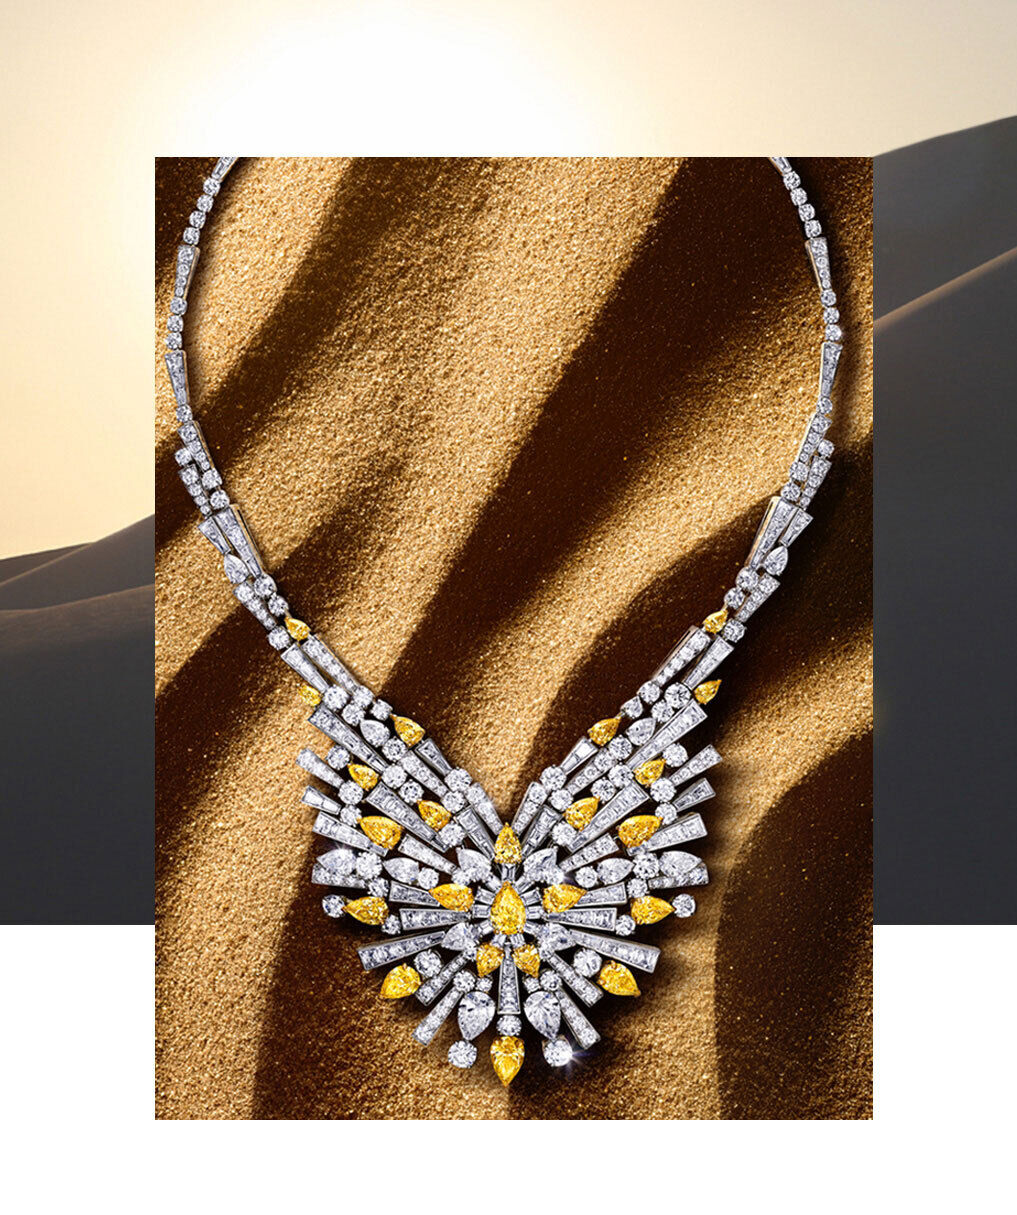 Graff New Dawn Jewellery collection yellow and white diamond high jewellery necklace